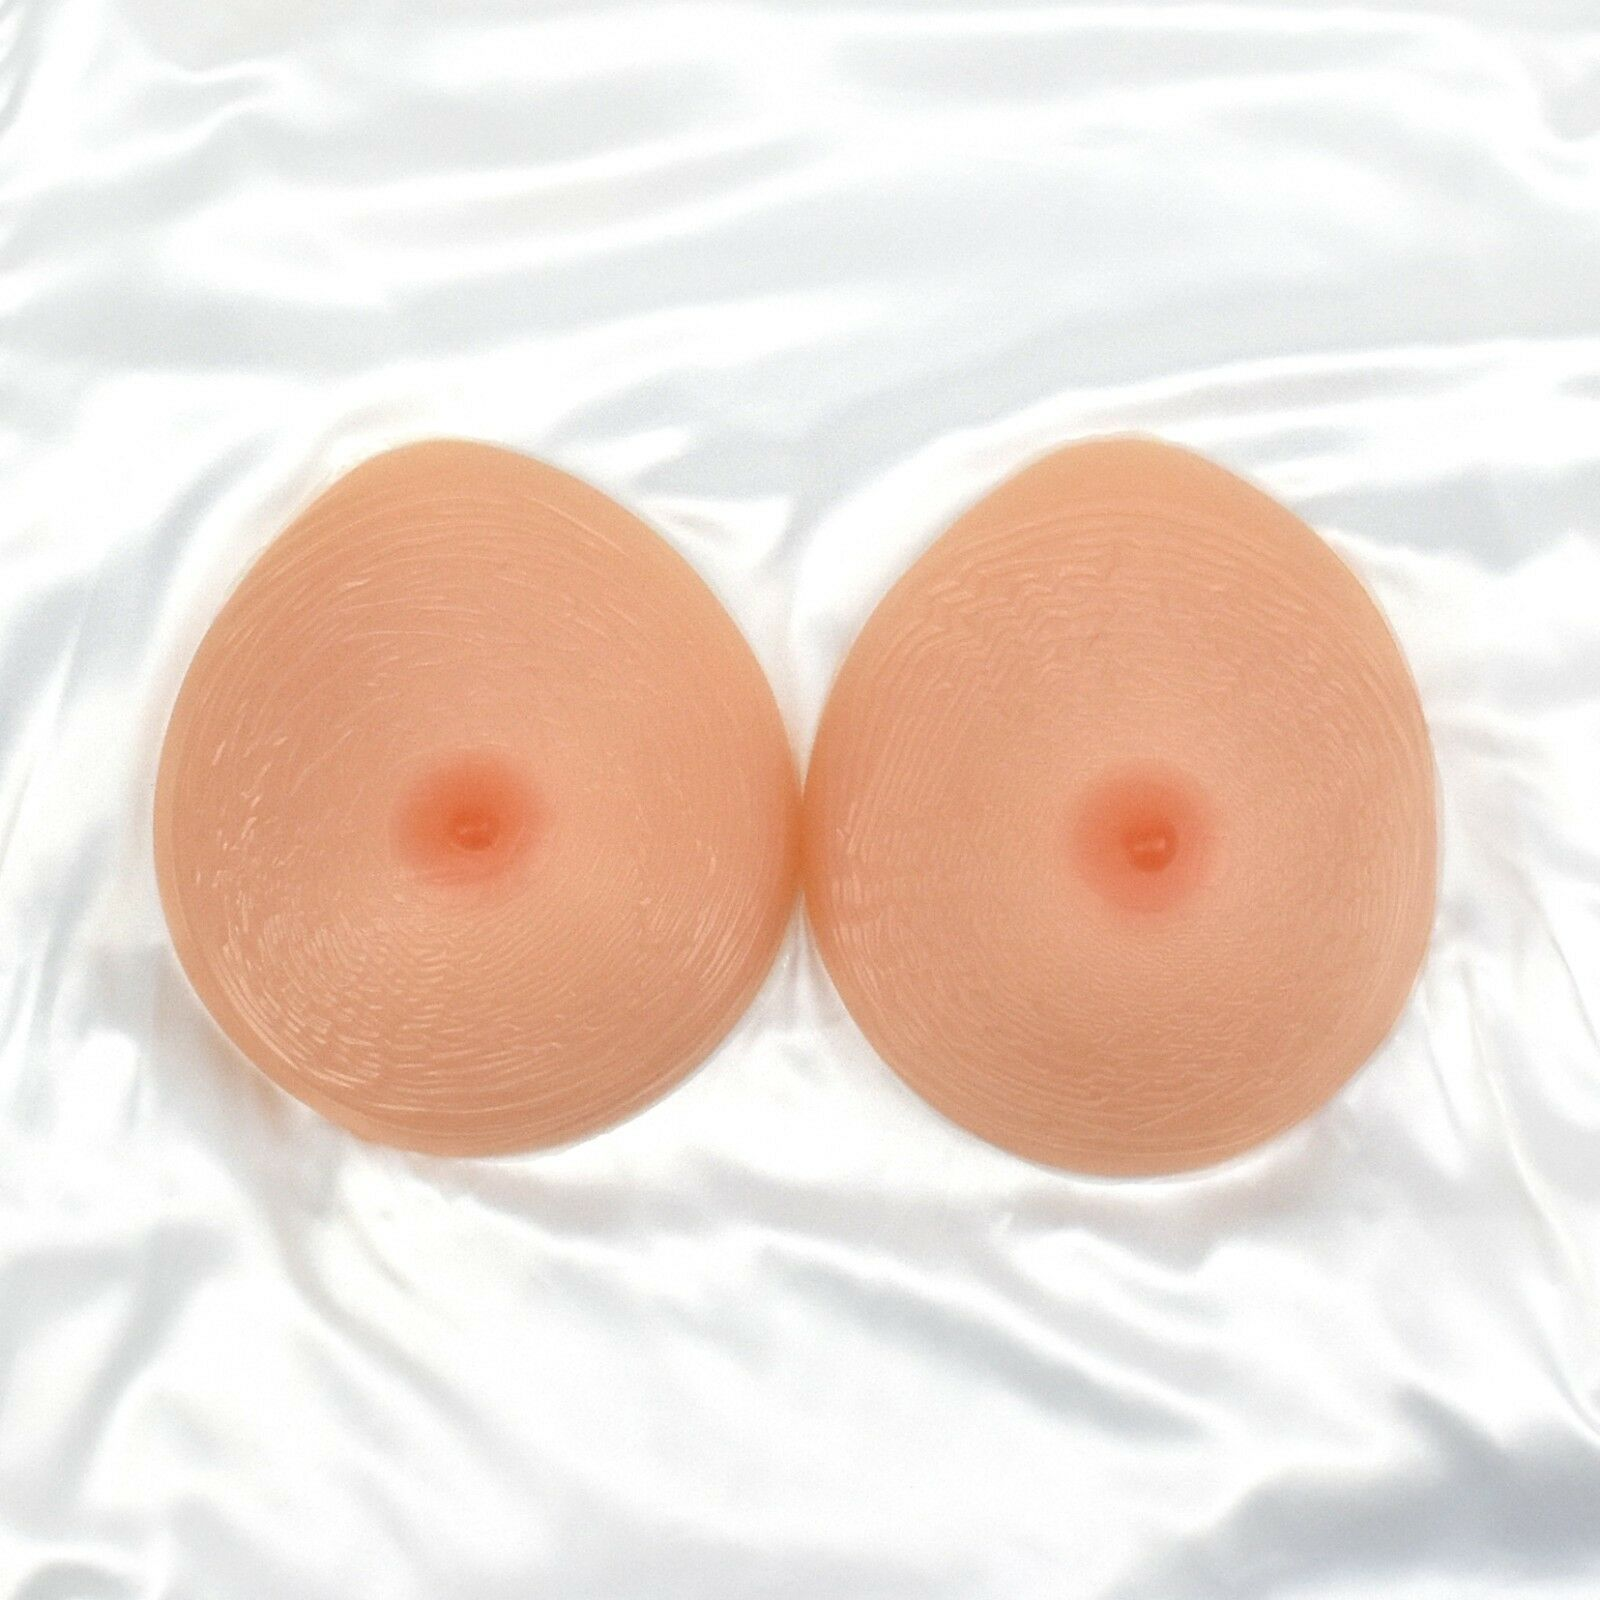 Cup D Premium Quality Silicone Breast Forms Fake Boobs Wide Full Cup